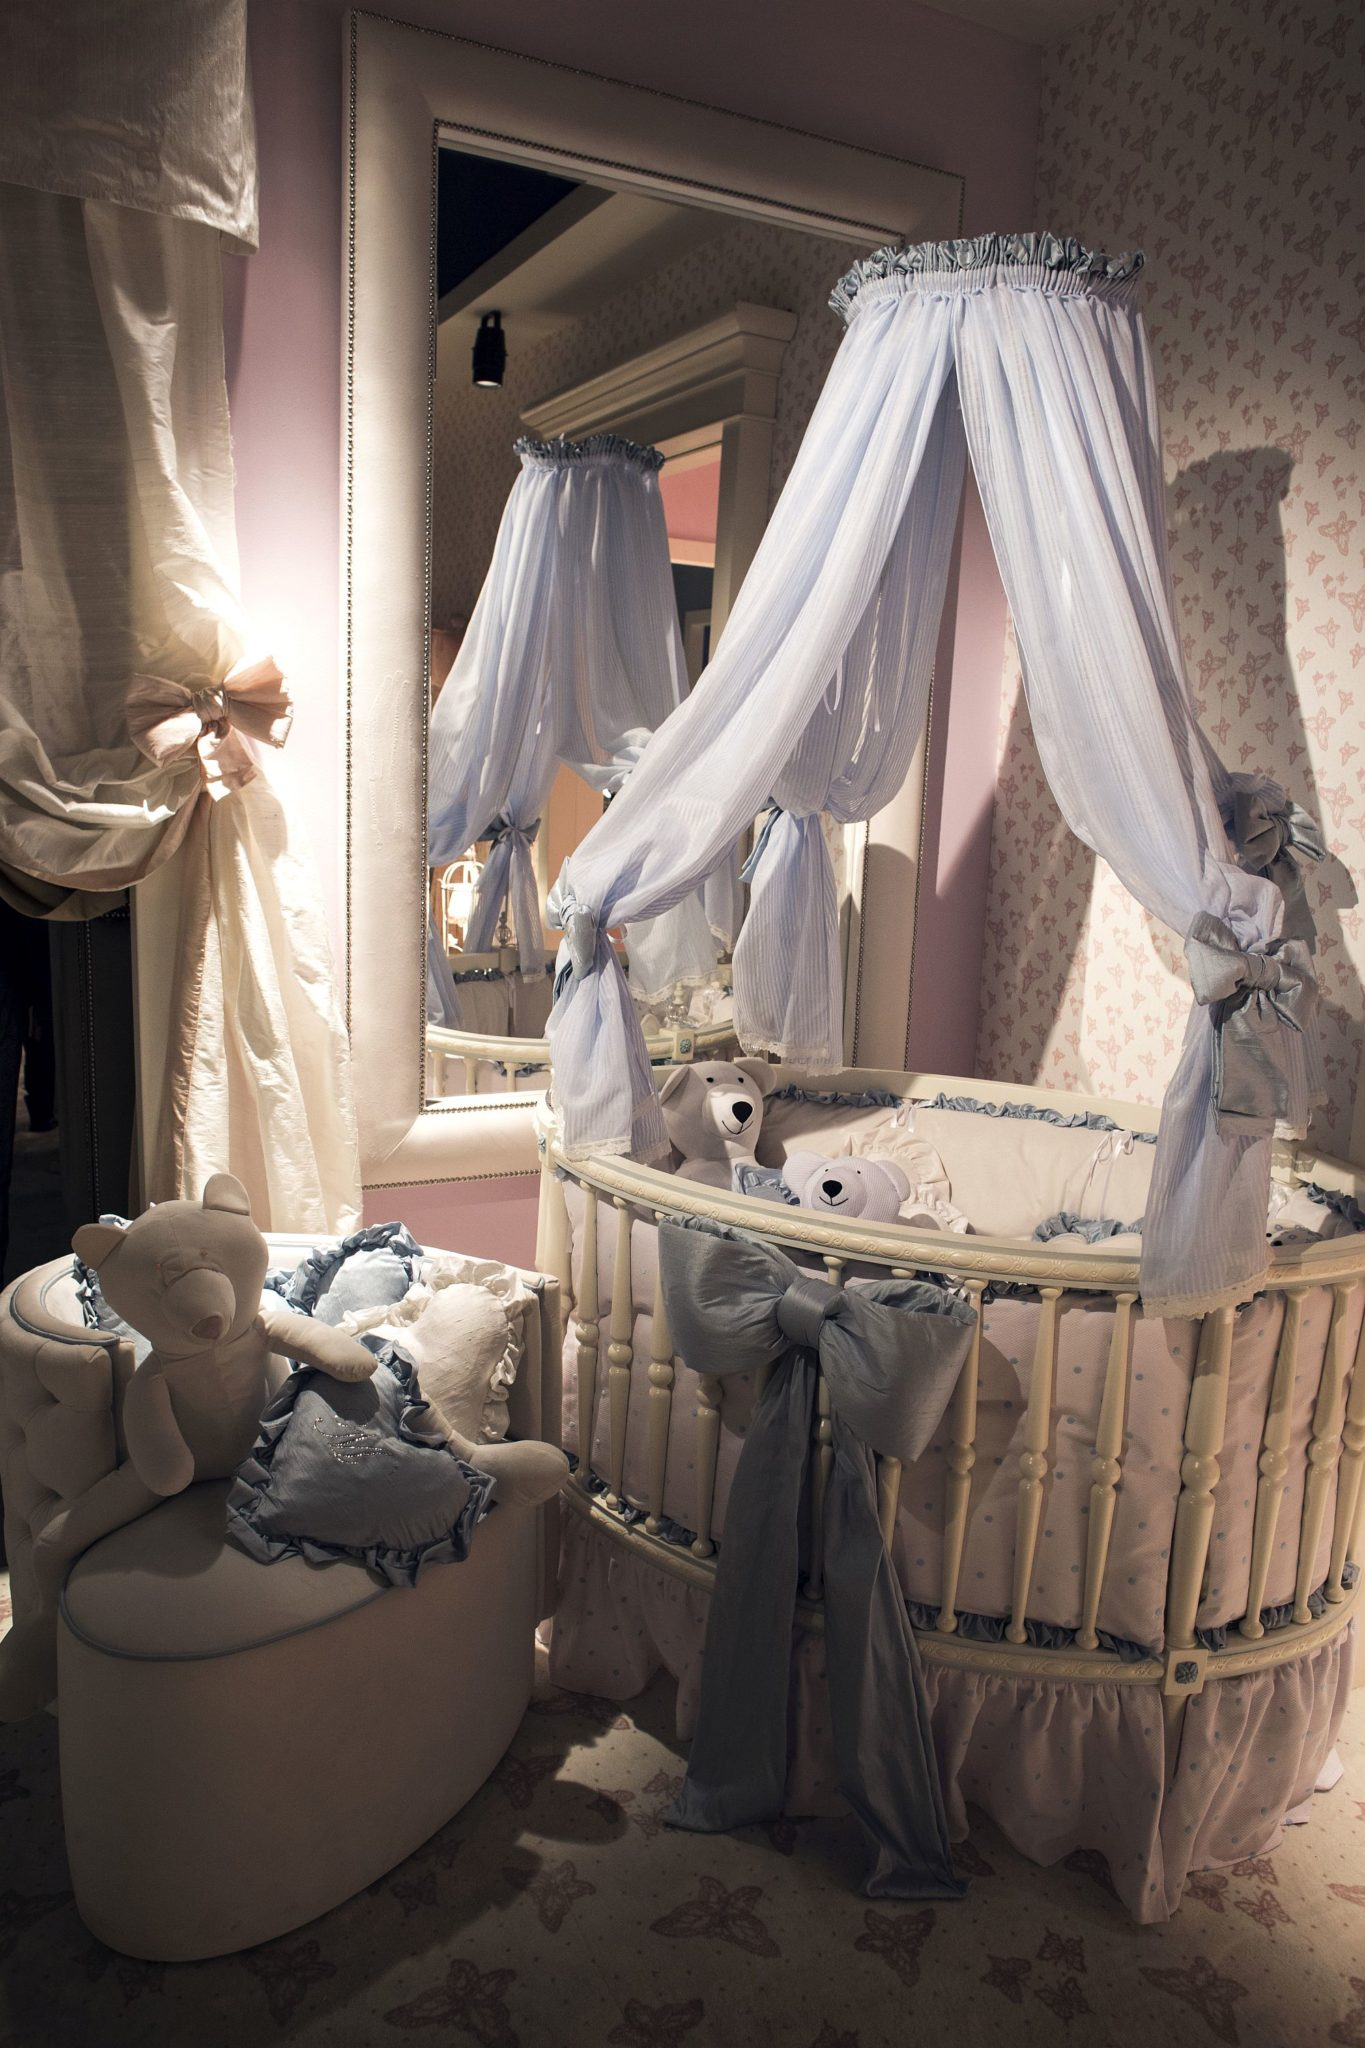 Round crib with a canopy above allows the nursery to stand out from the usual